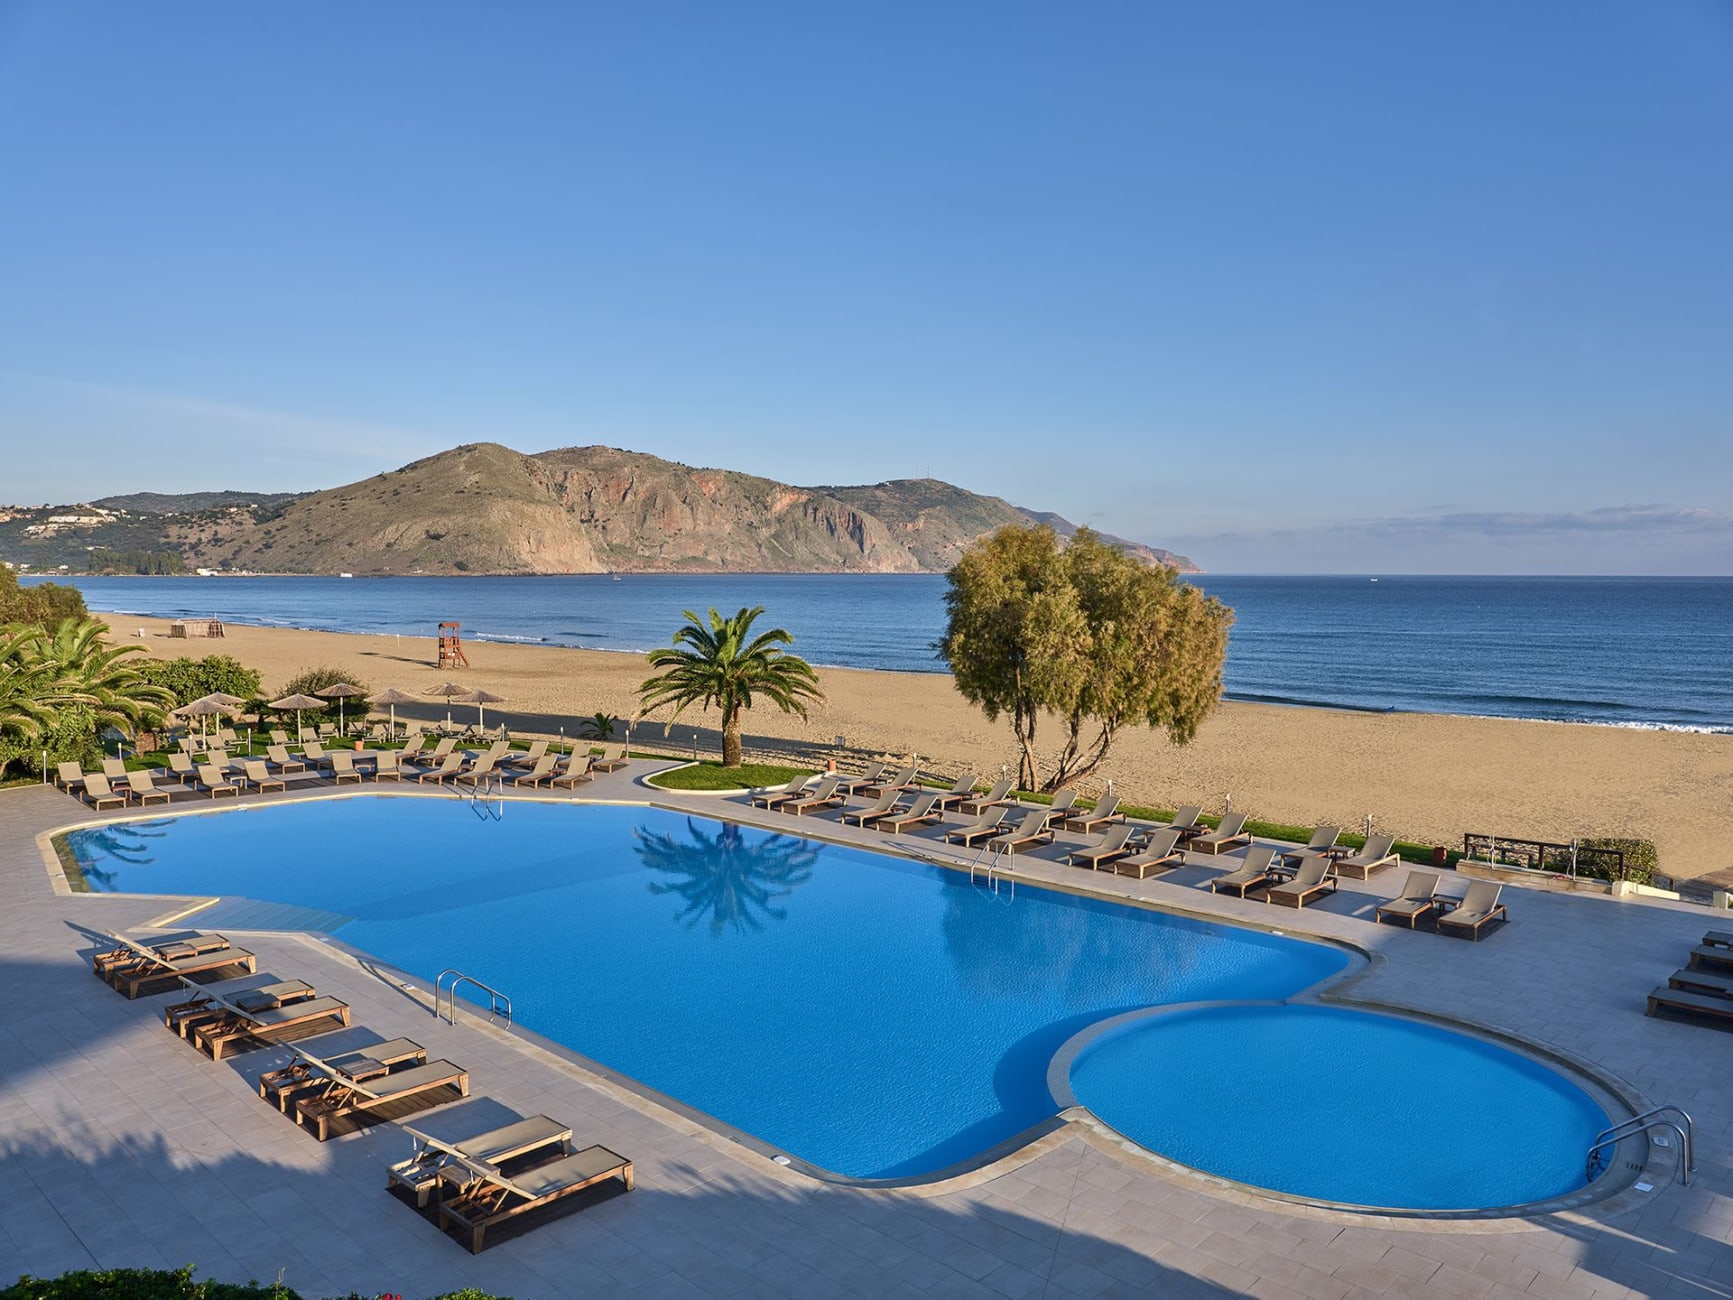 Resort Hotel Pilot Beach Resort Georgioupolis Trivago De